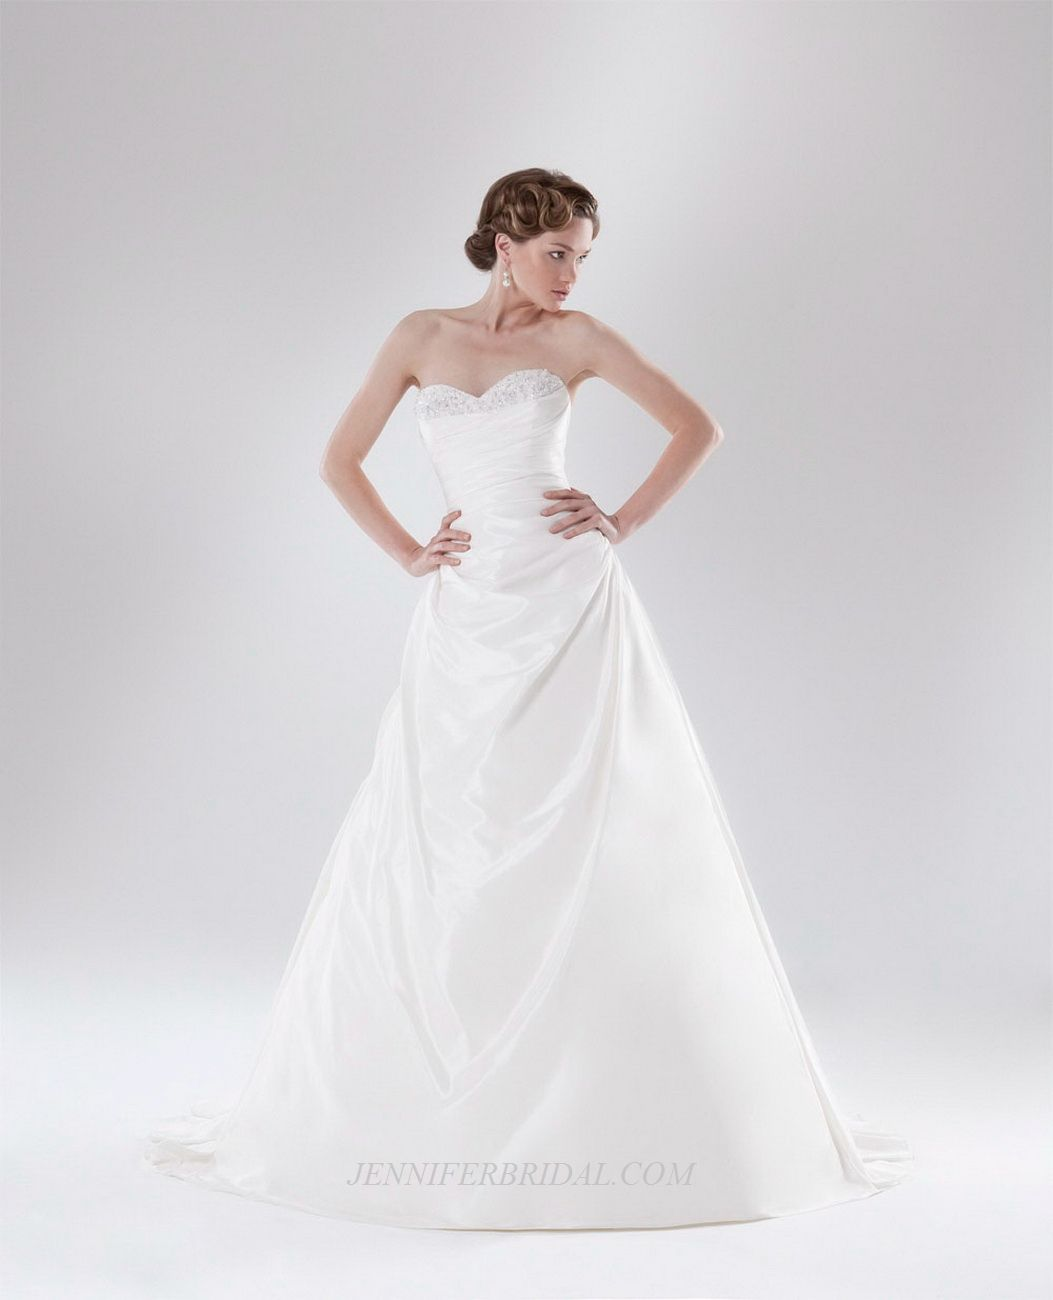 Ellis bridal gown style dream wedding dresses pinterest